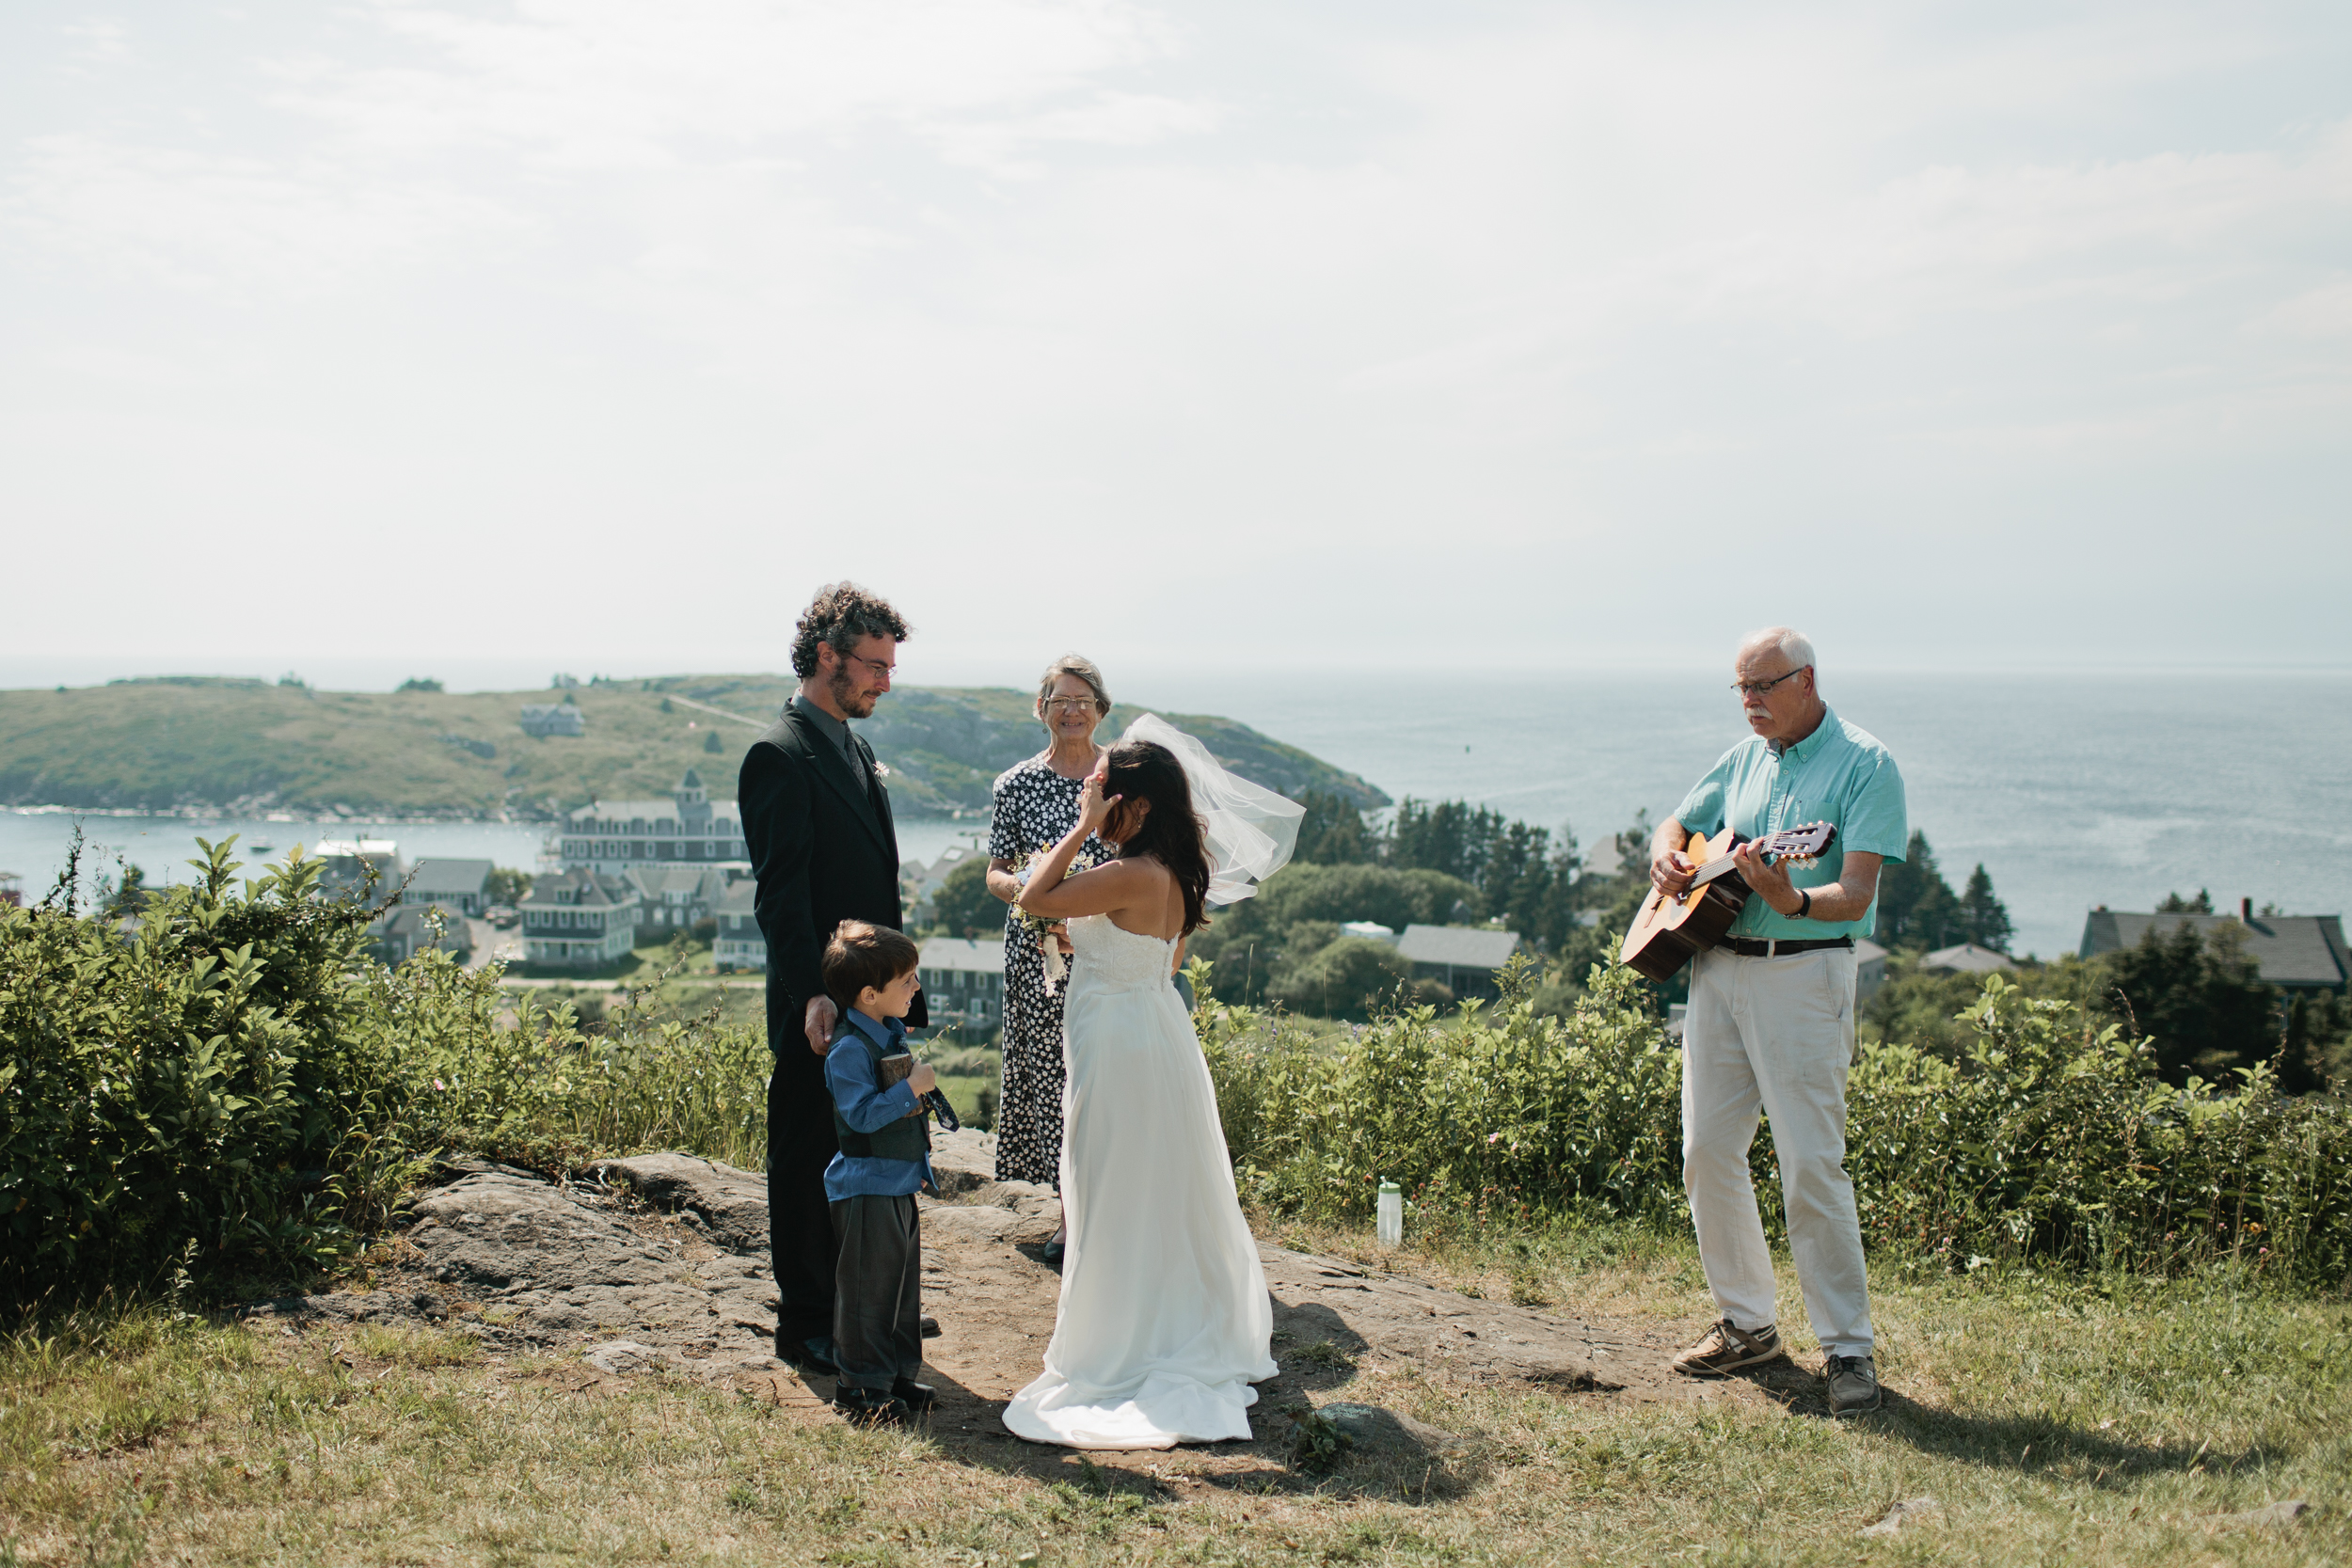 Monhegan-Island-Wedding-26.jpg